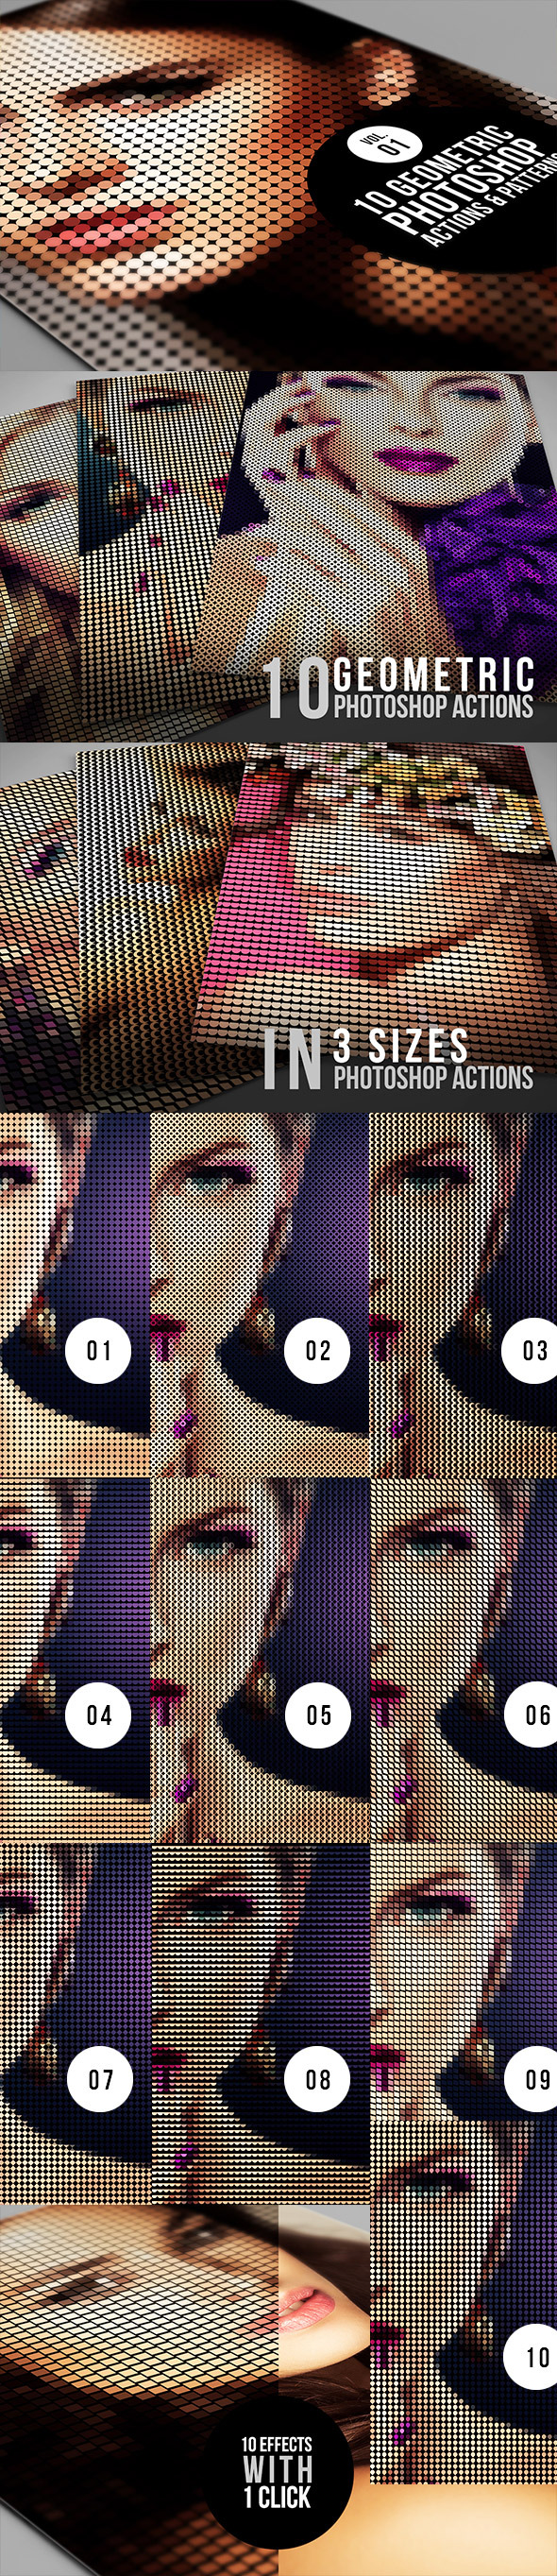 10 Geometric Photoshop Actions 01 - Photo Effects Actions